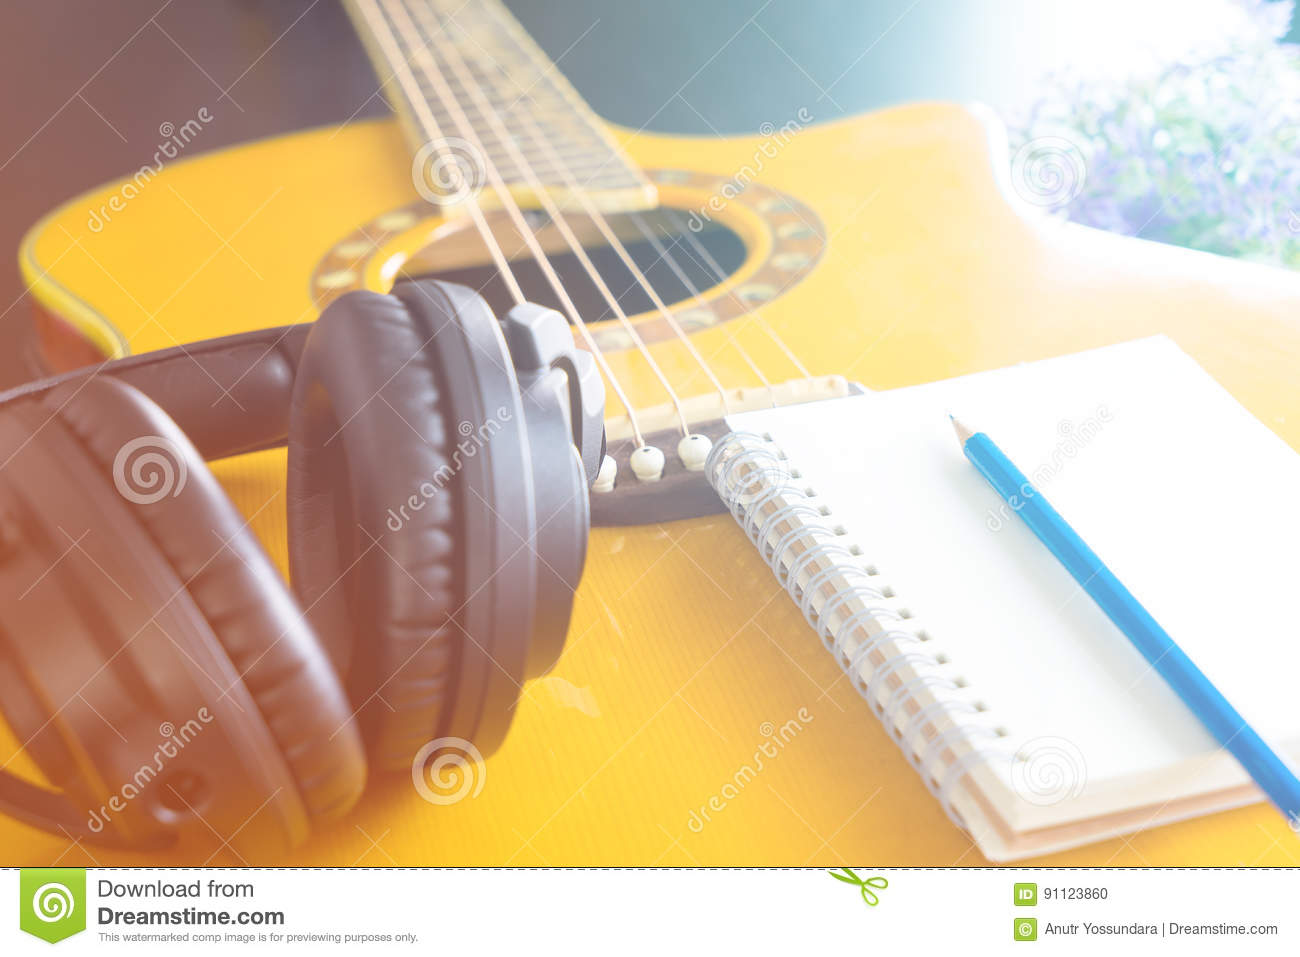 Guitar Headphone notebook for songwriting